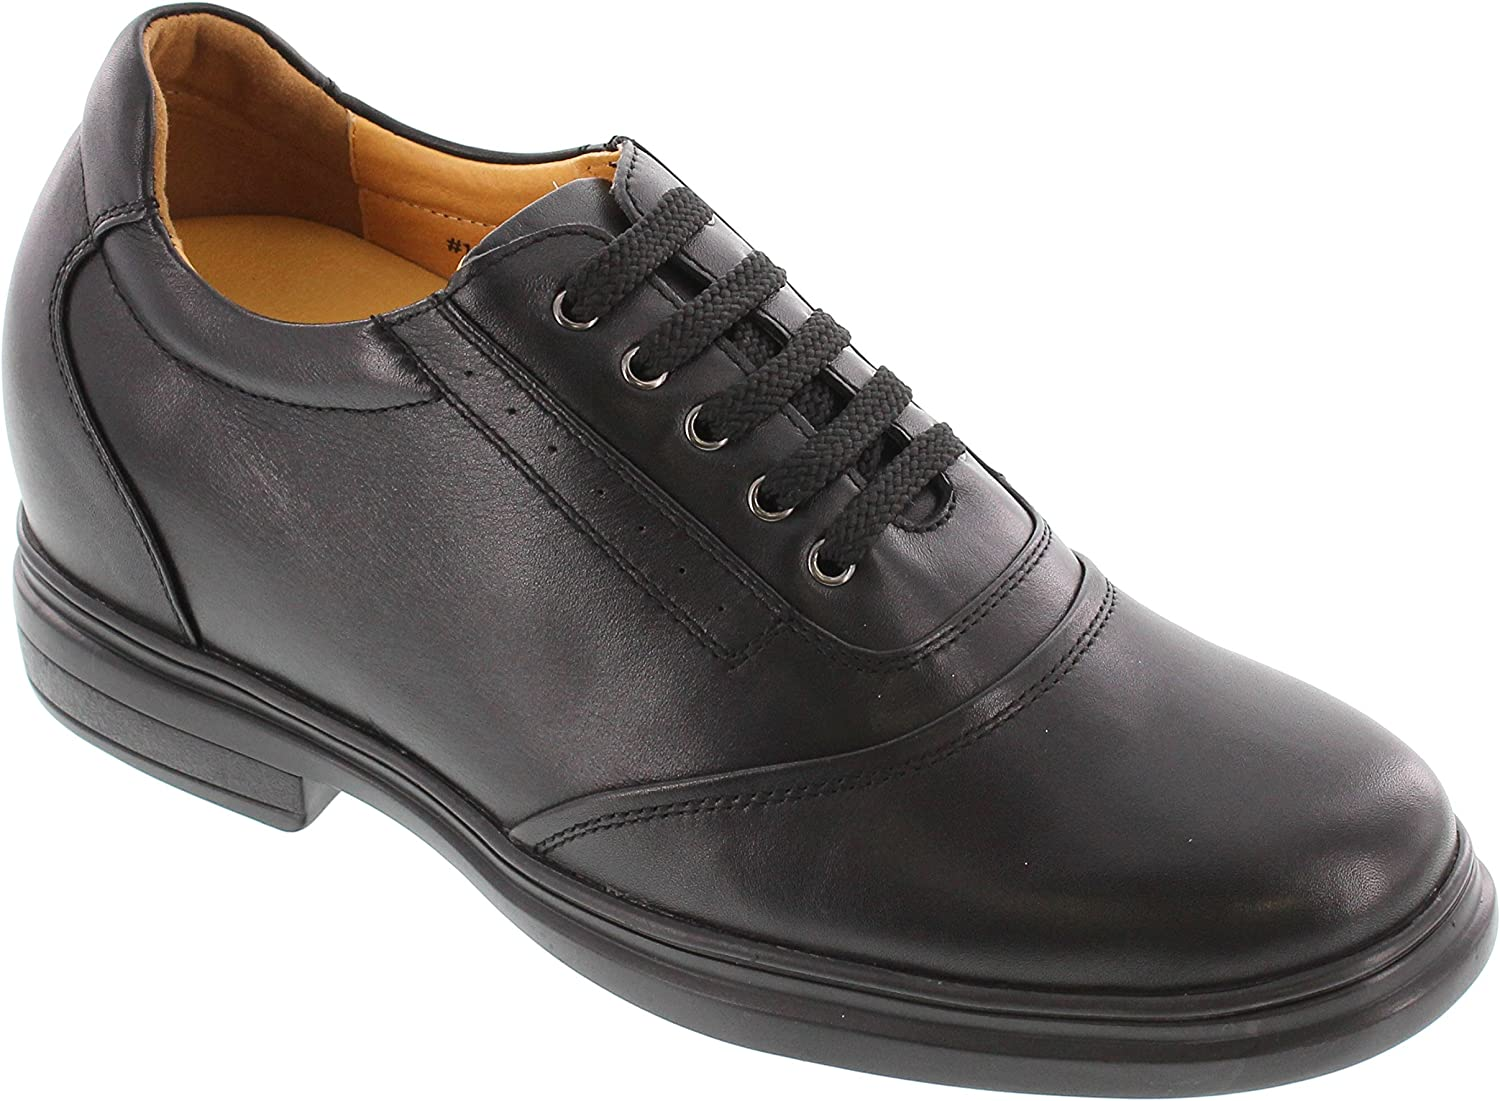 Toto Men's Invisible Height Increasing Elevator shoes - Black Premium Leather Lace-up Casual Oxfords - X2701